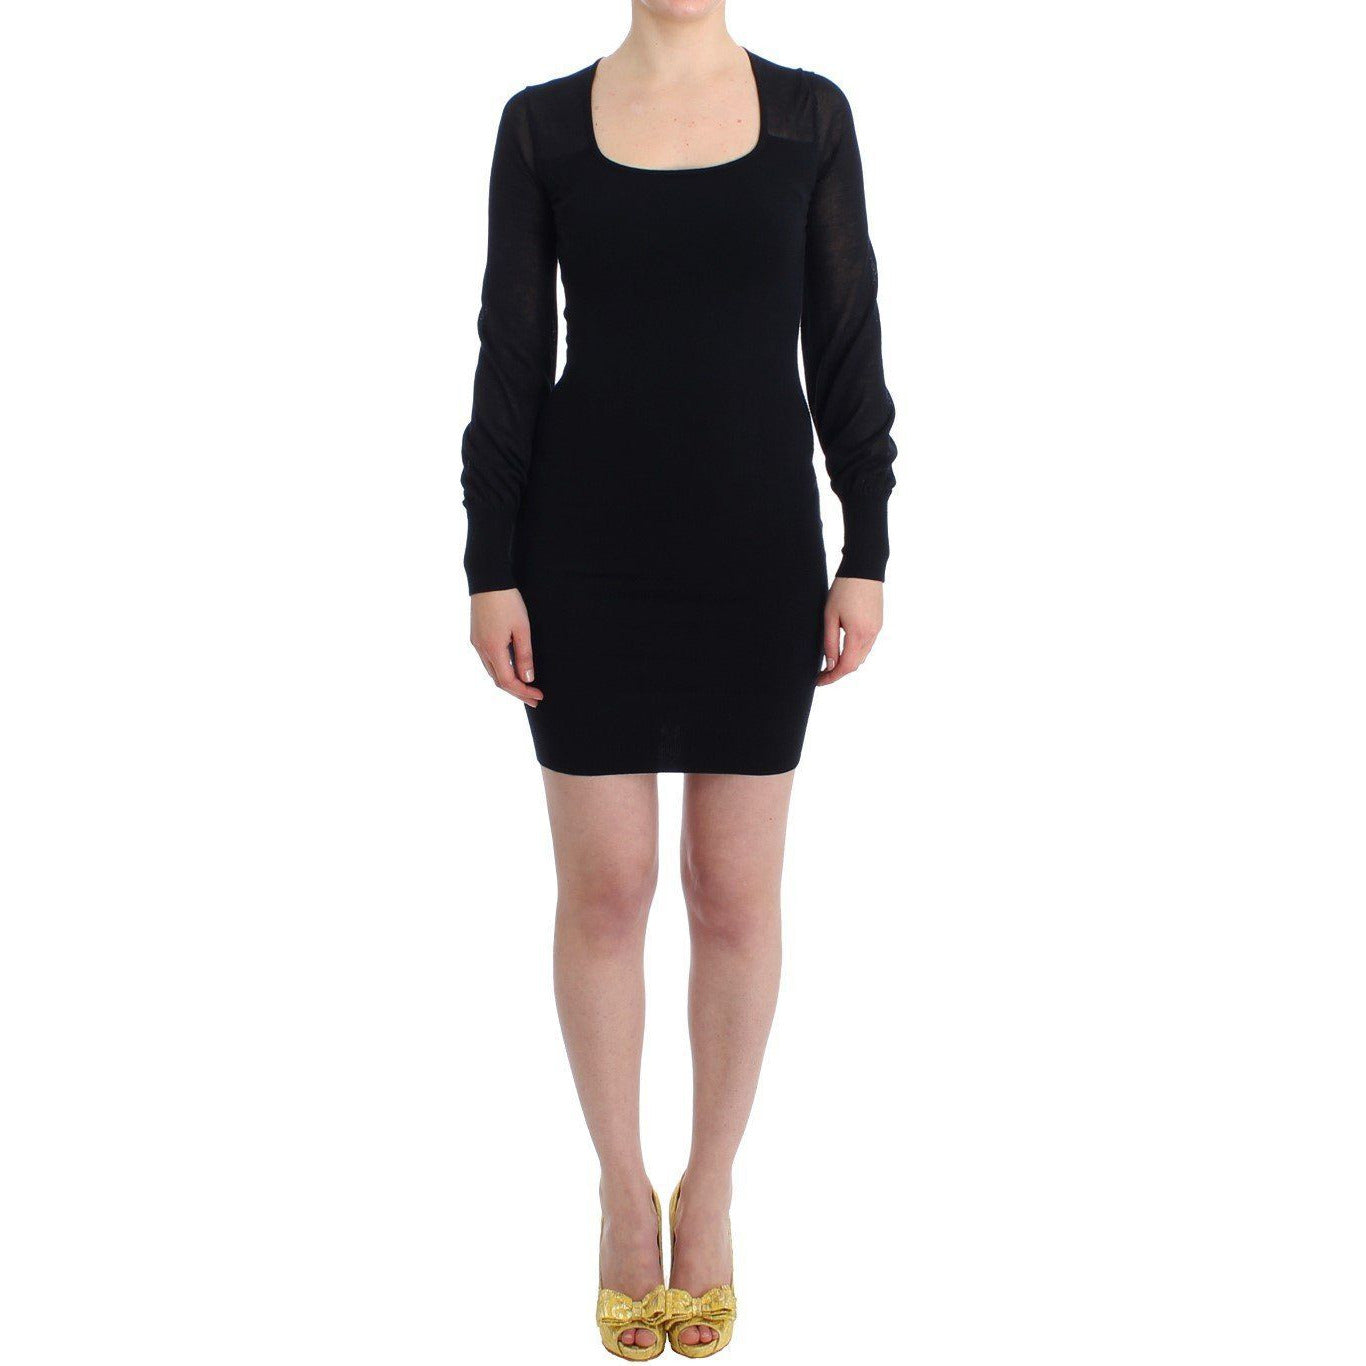 Black Long Sleeve Knitted Sweater Dress GF Ferre